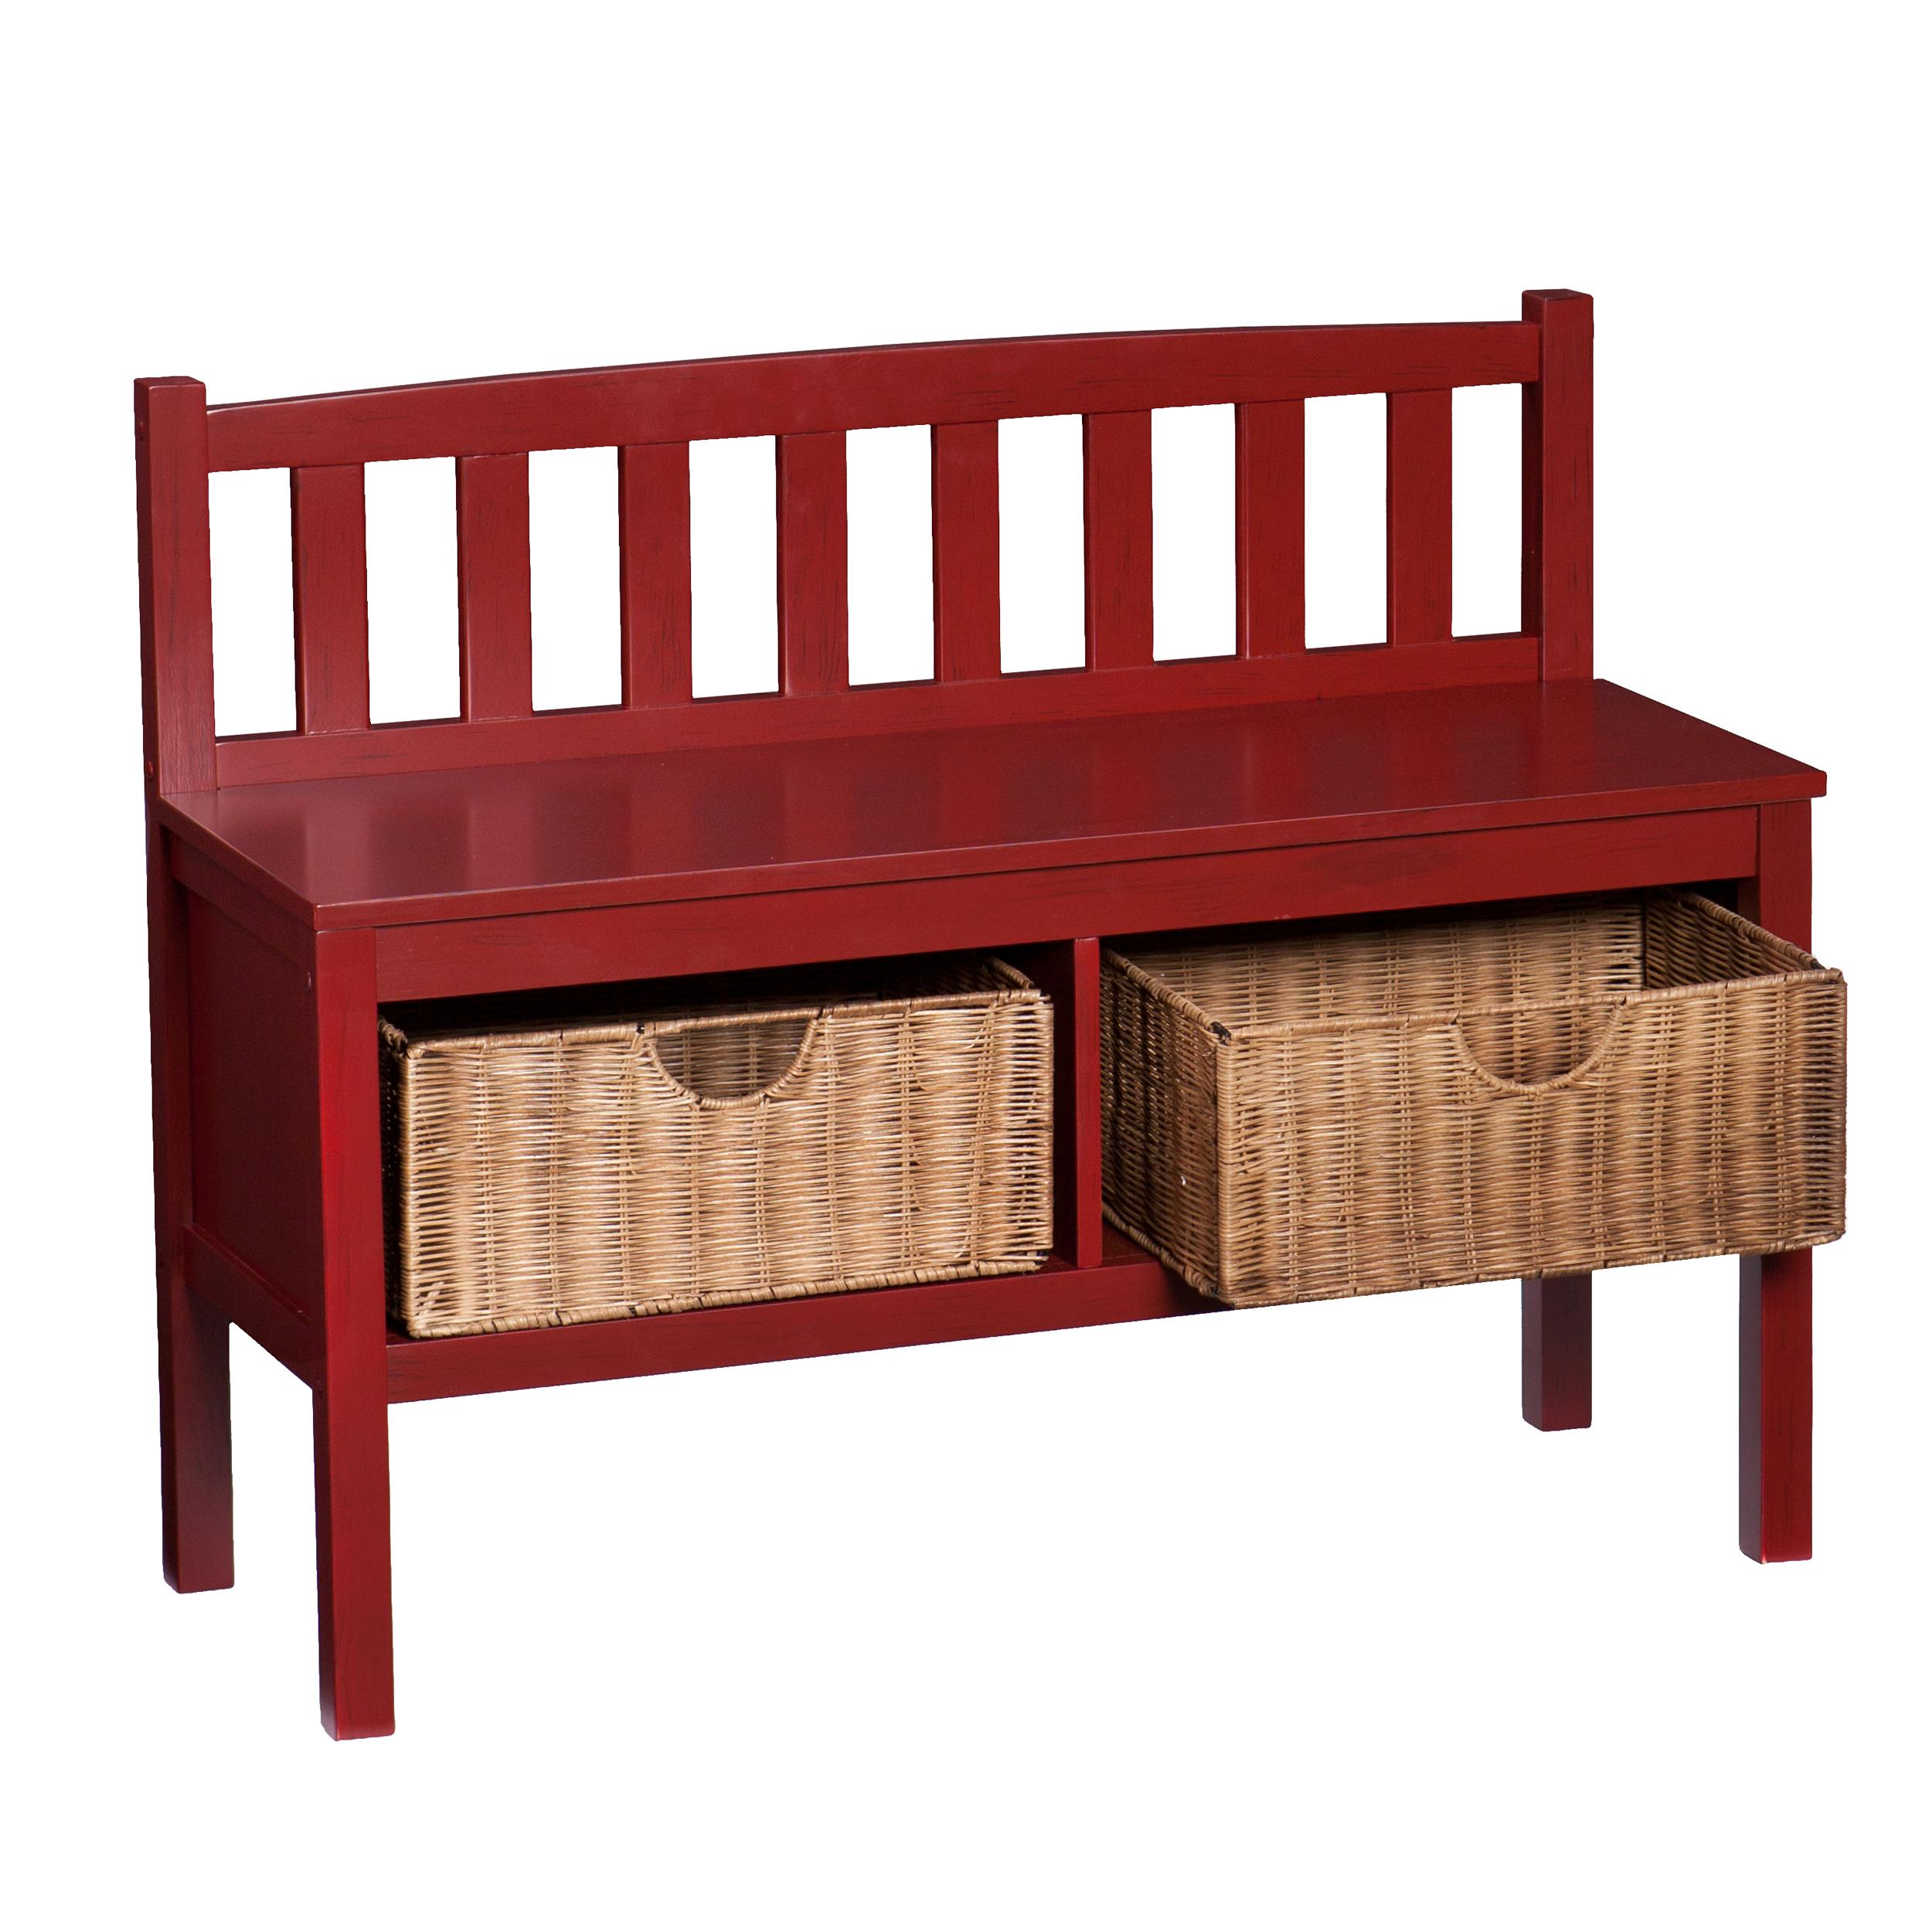 Southern enterprises collins bench with storage baskets solid red Bench with baskets